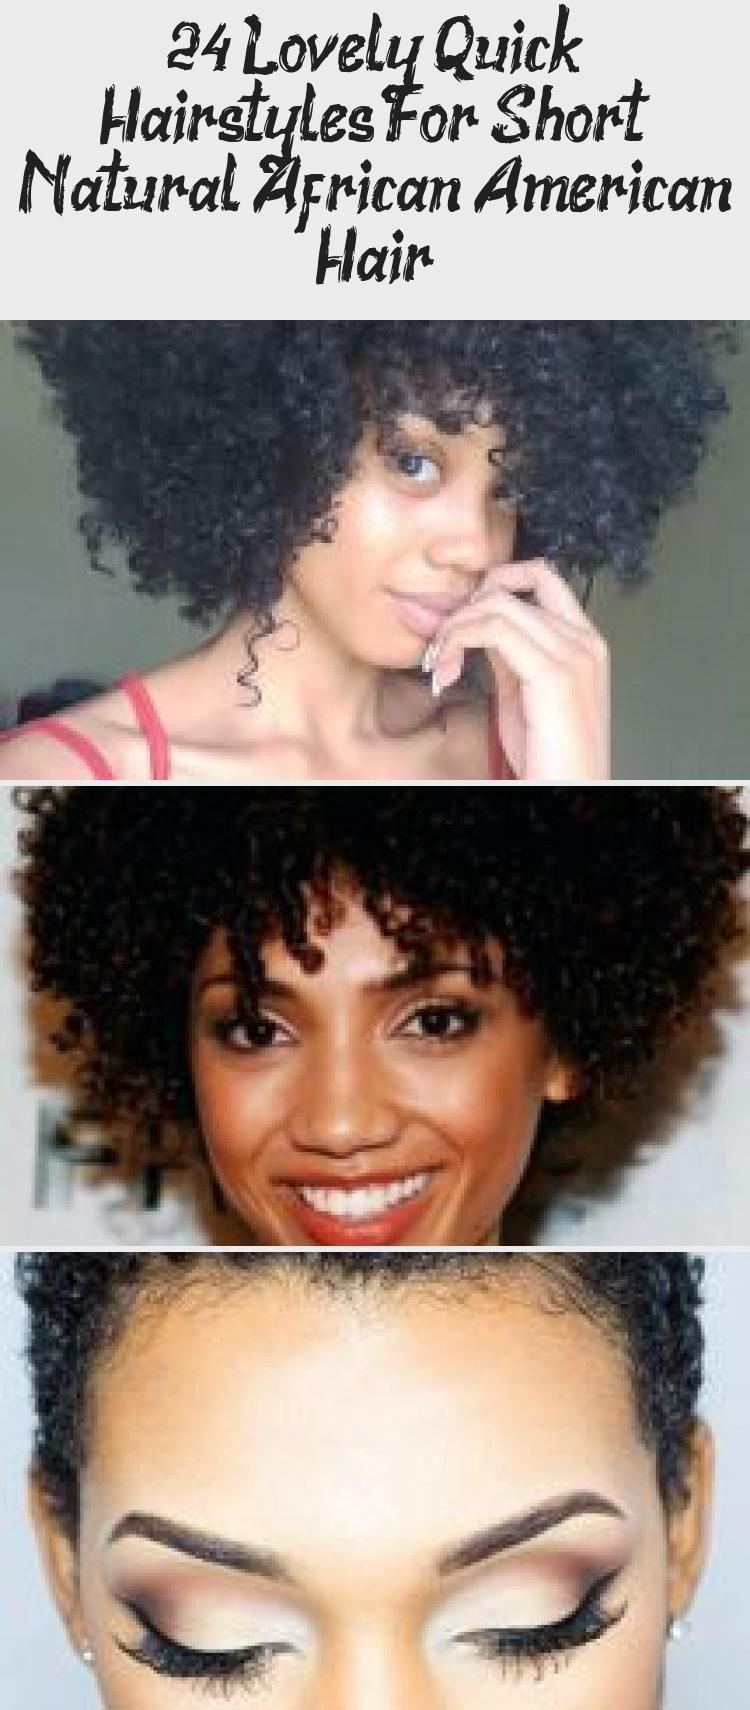 Photo of 24 Lovely Quick Hairstyles For Short Natural African American Hair – Pinokyo Qui…